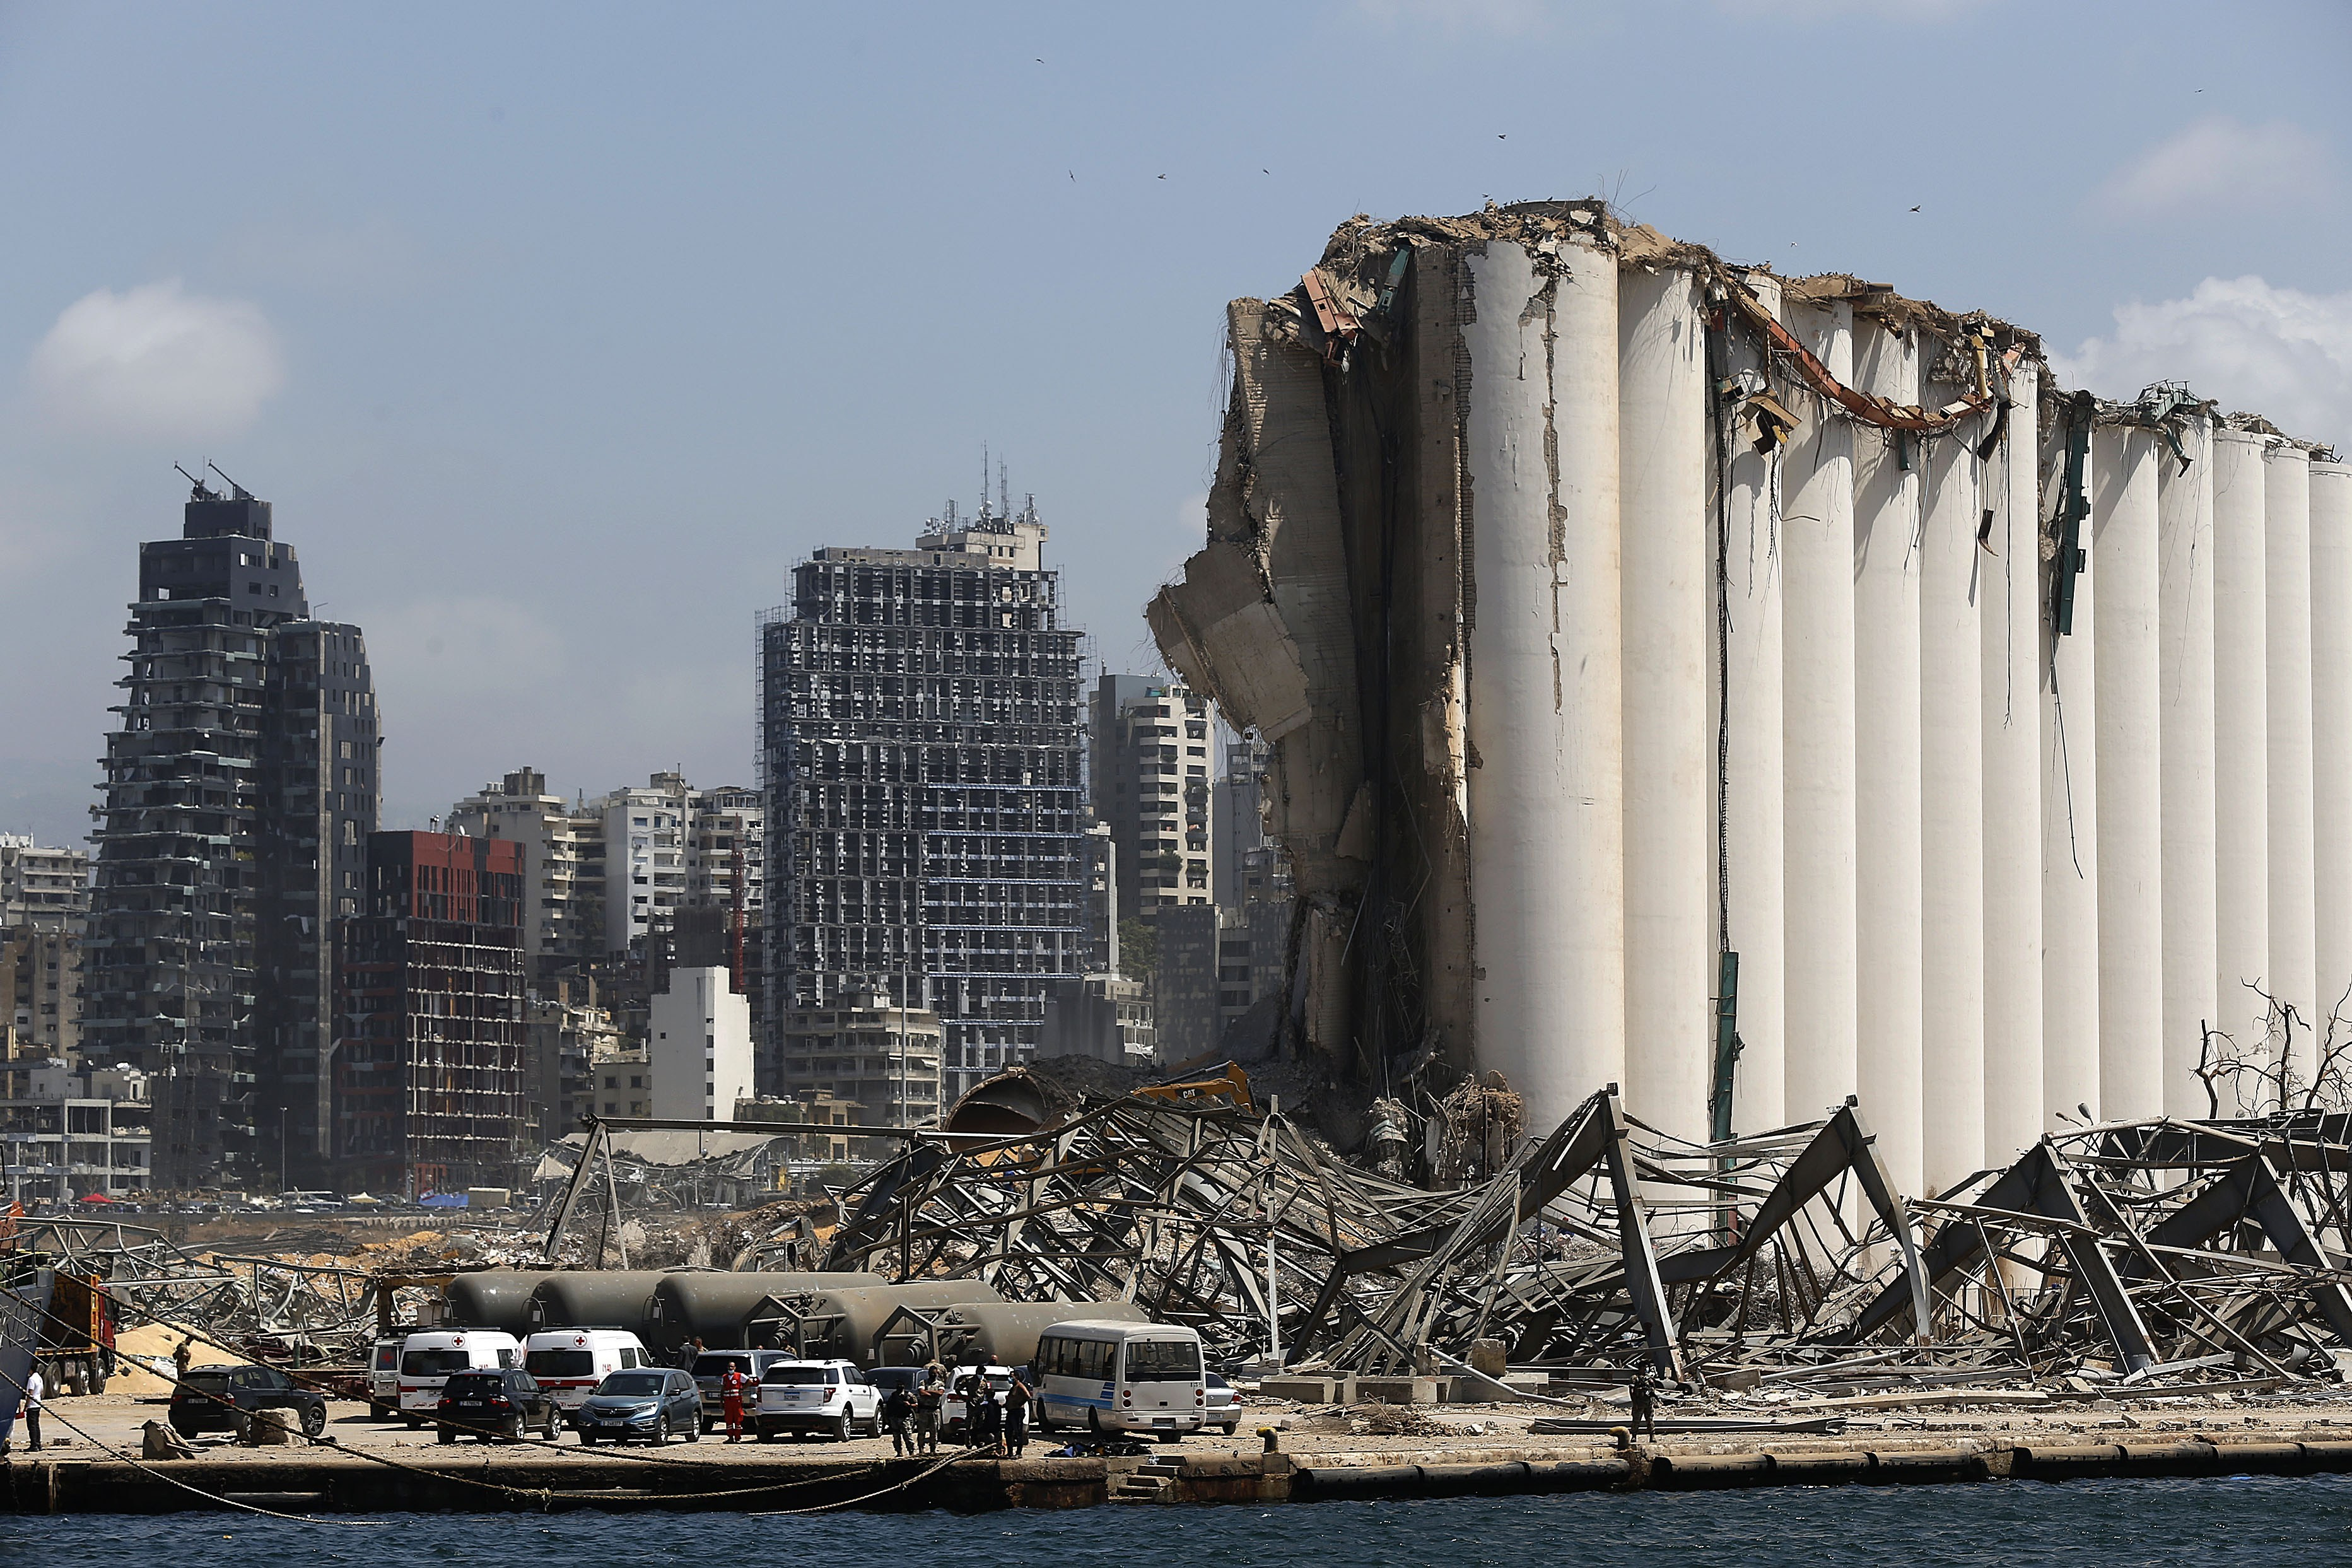 UN starts disbursing fund to help families affected by Beirut blasts